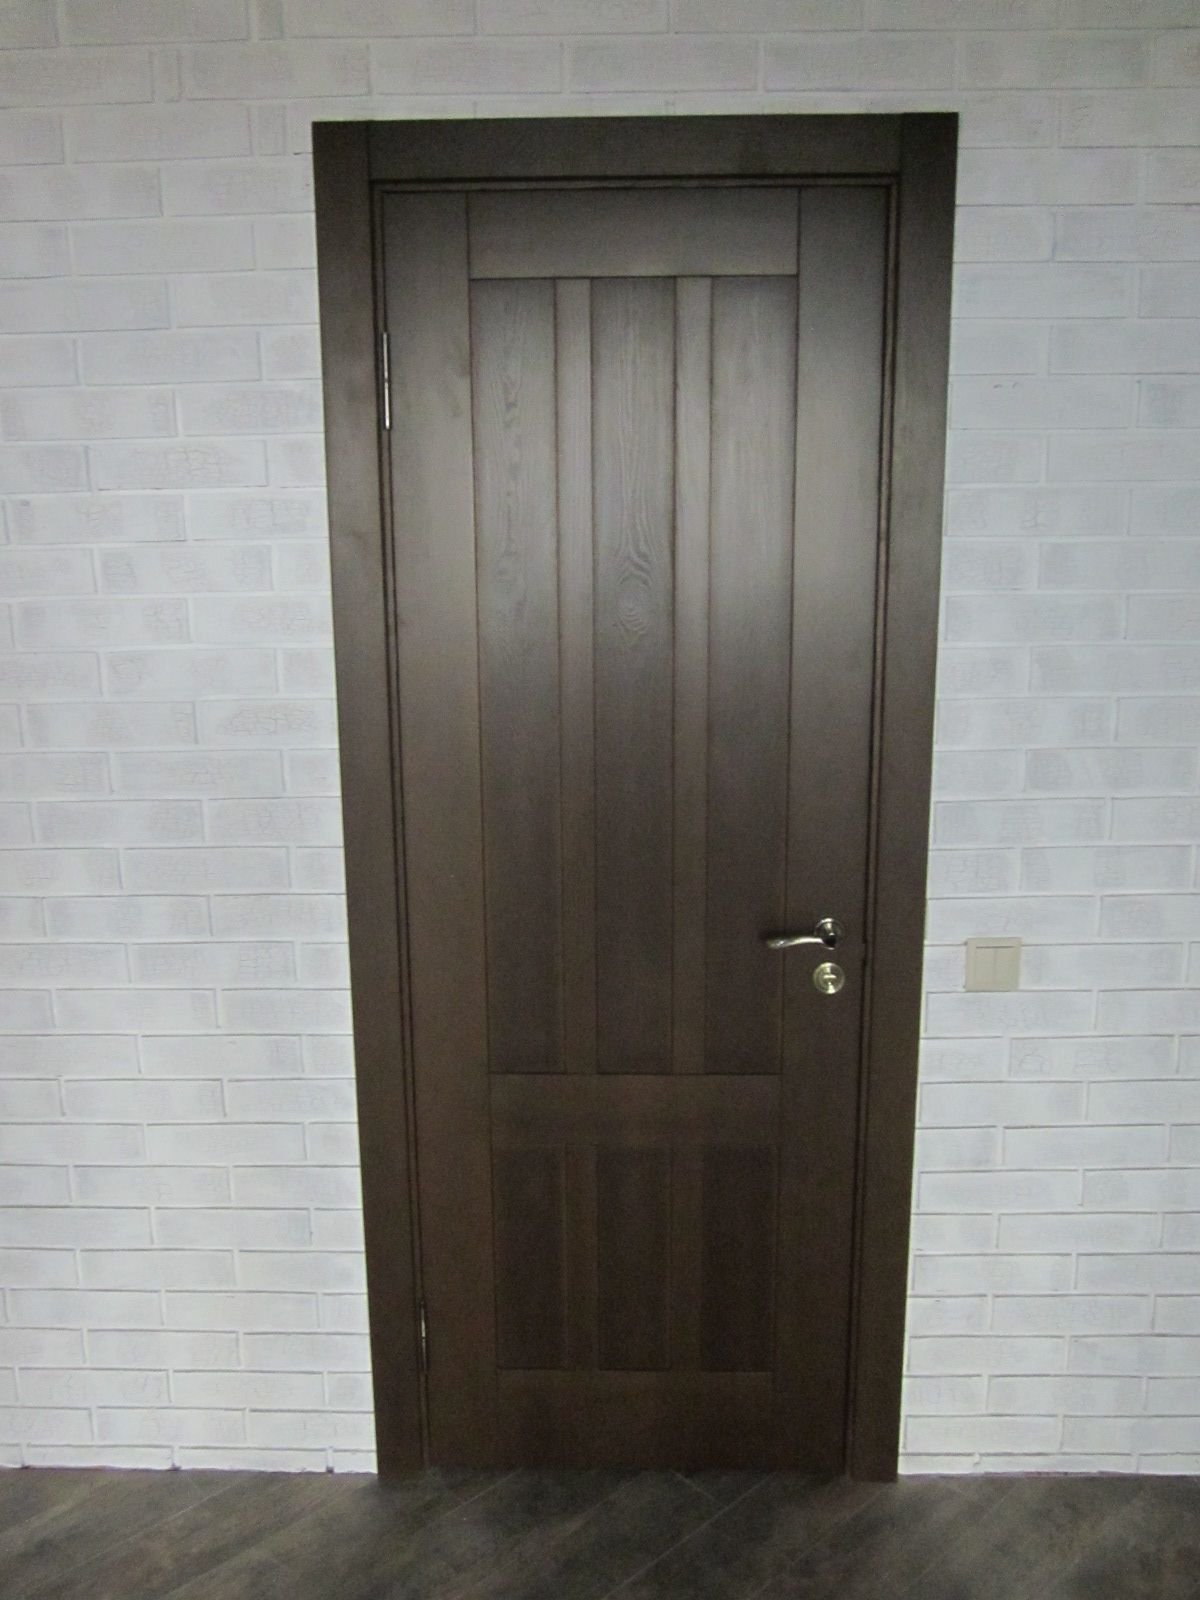 Dark wooden interior door and white brick wall